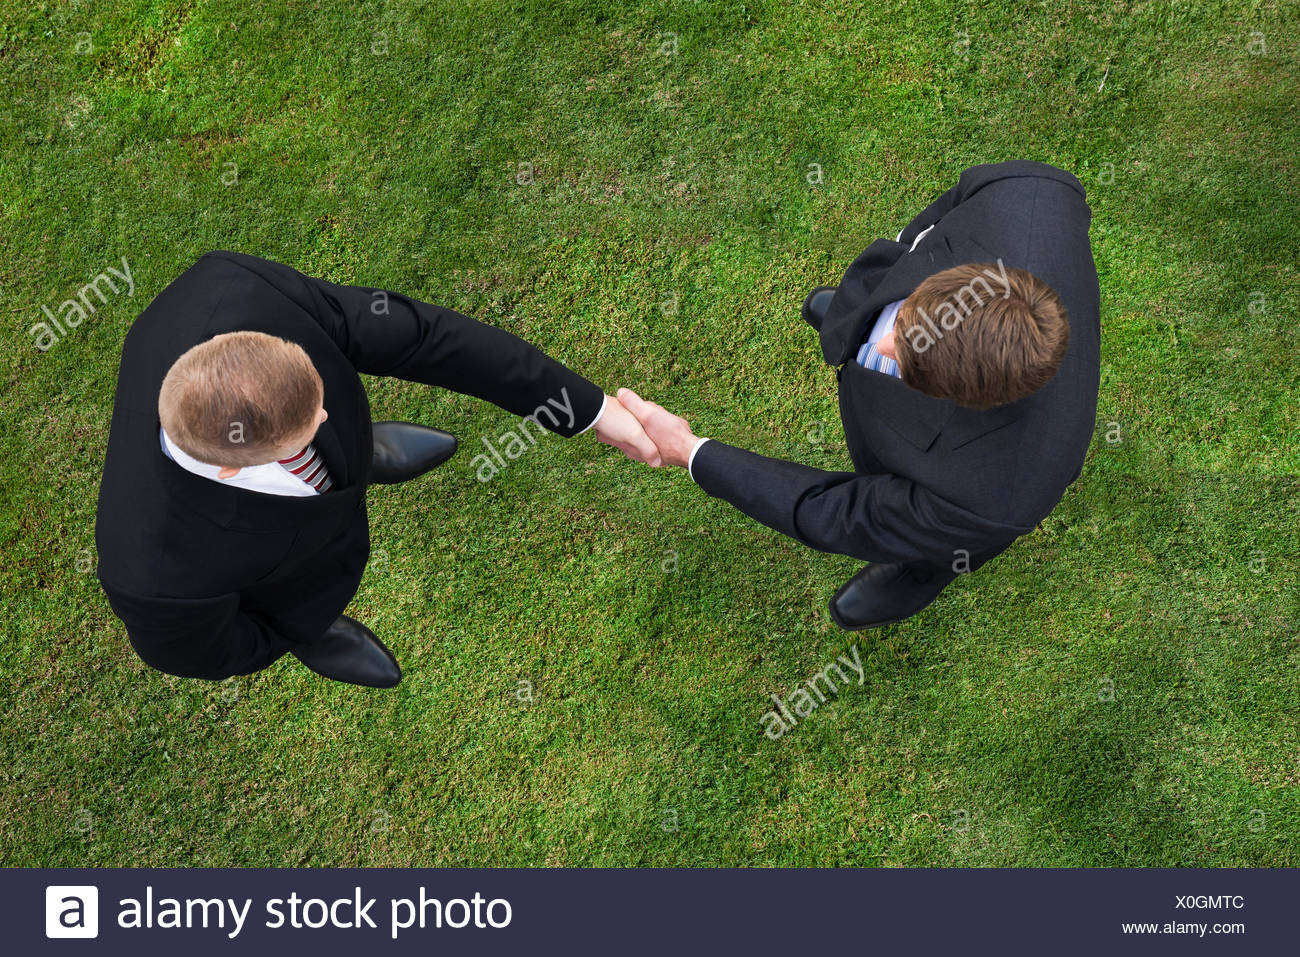 Businessmen Shaking Hands While Standing On Grassy Field - Stock Image